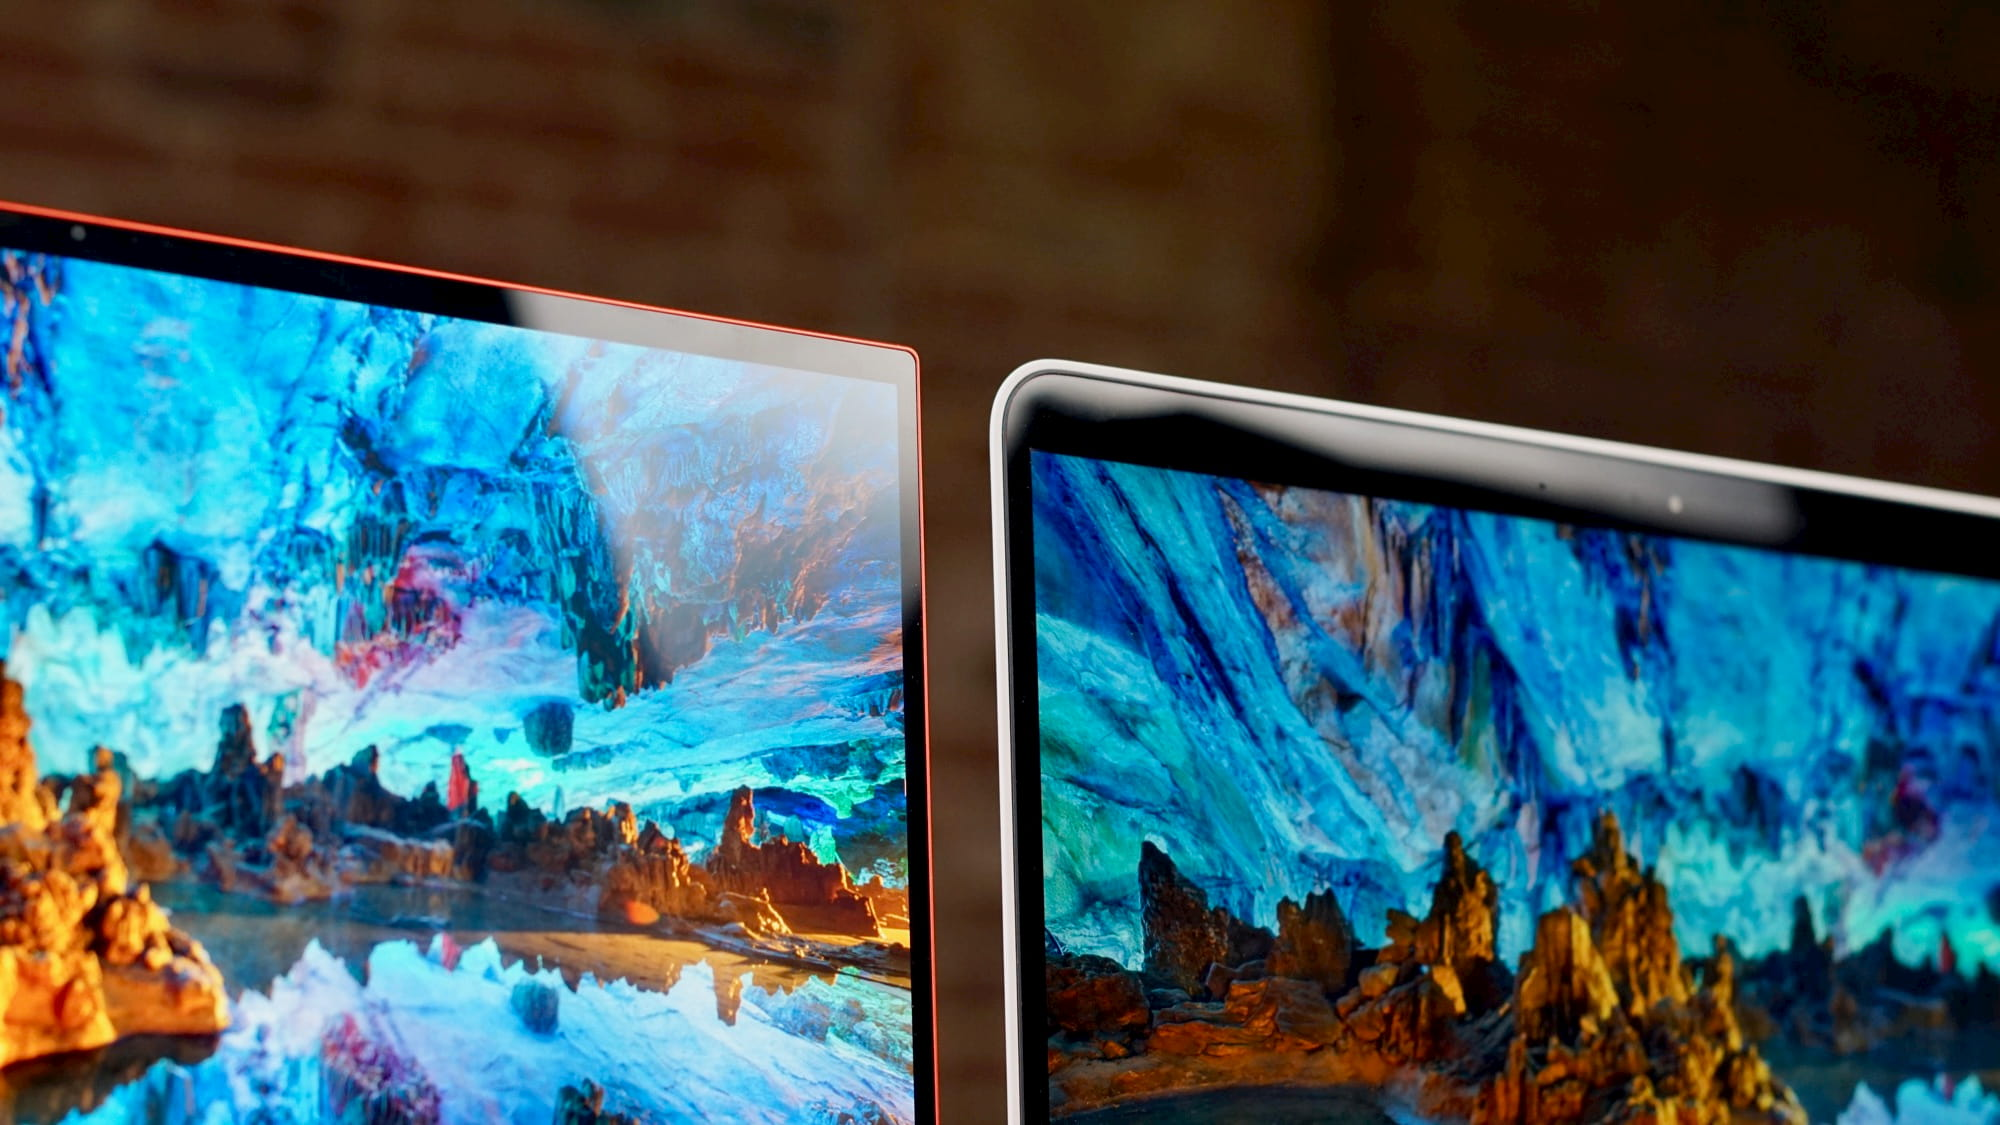 With the 4K screens on the Samsung Galaxy Chromebook and Pixelbook Go, there's really no contest